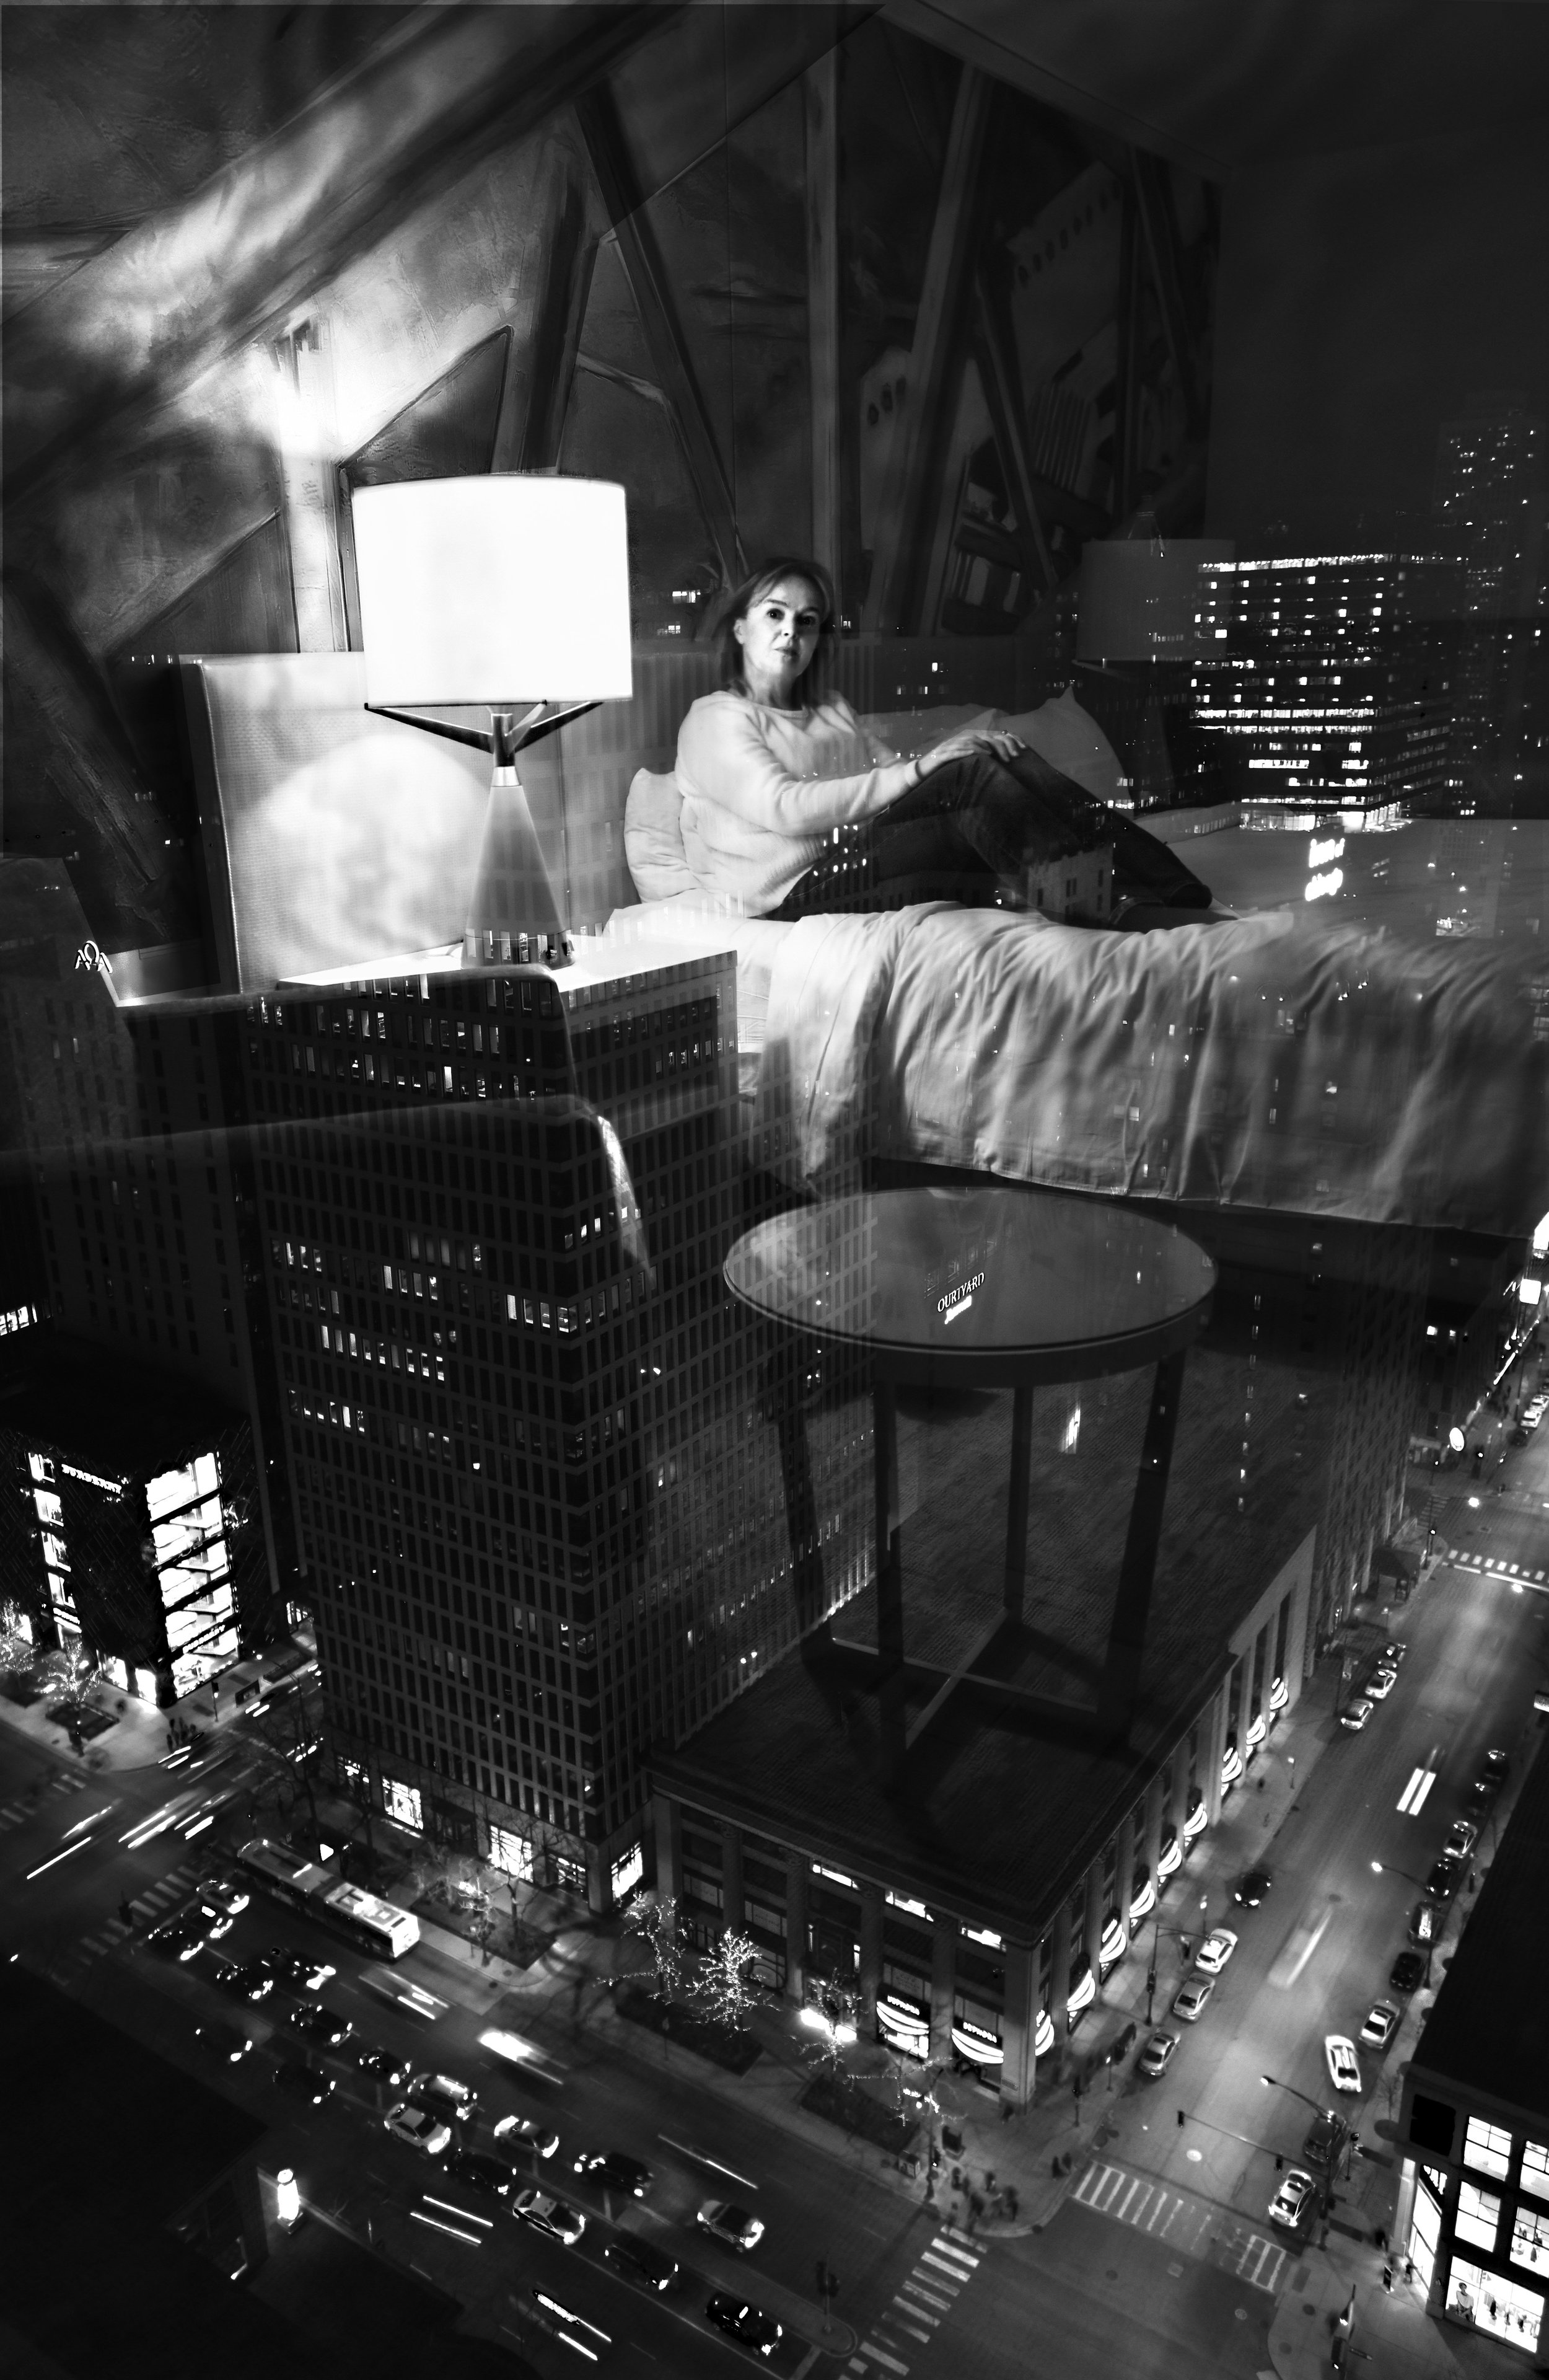 SPA 2017 Exhibition: Lonely in Chicago , 34 x 43 cm (framed)Digital image printed on Canson Baryta paper £140